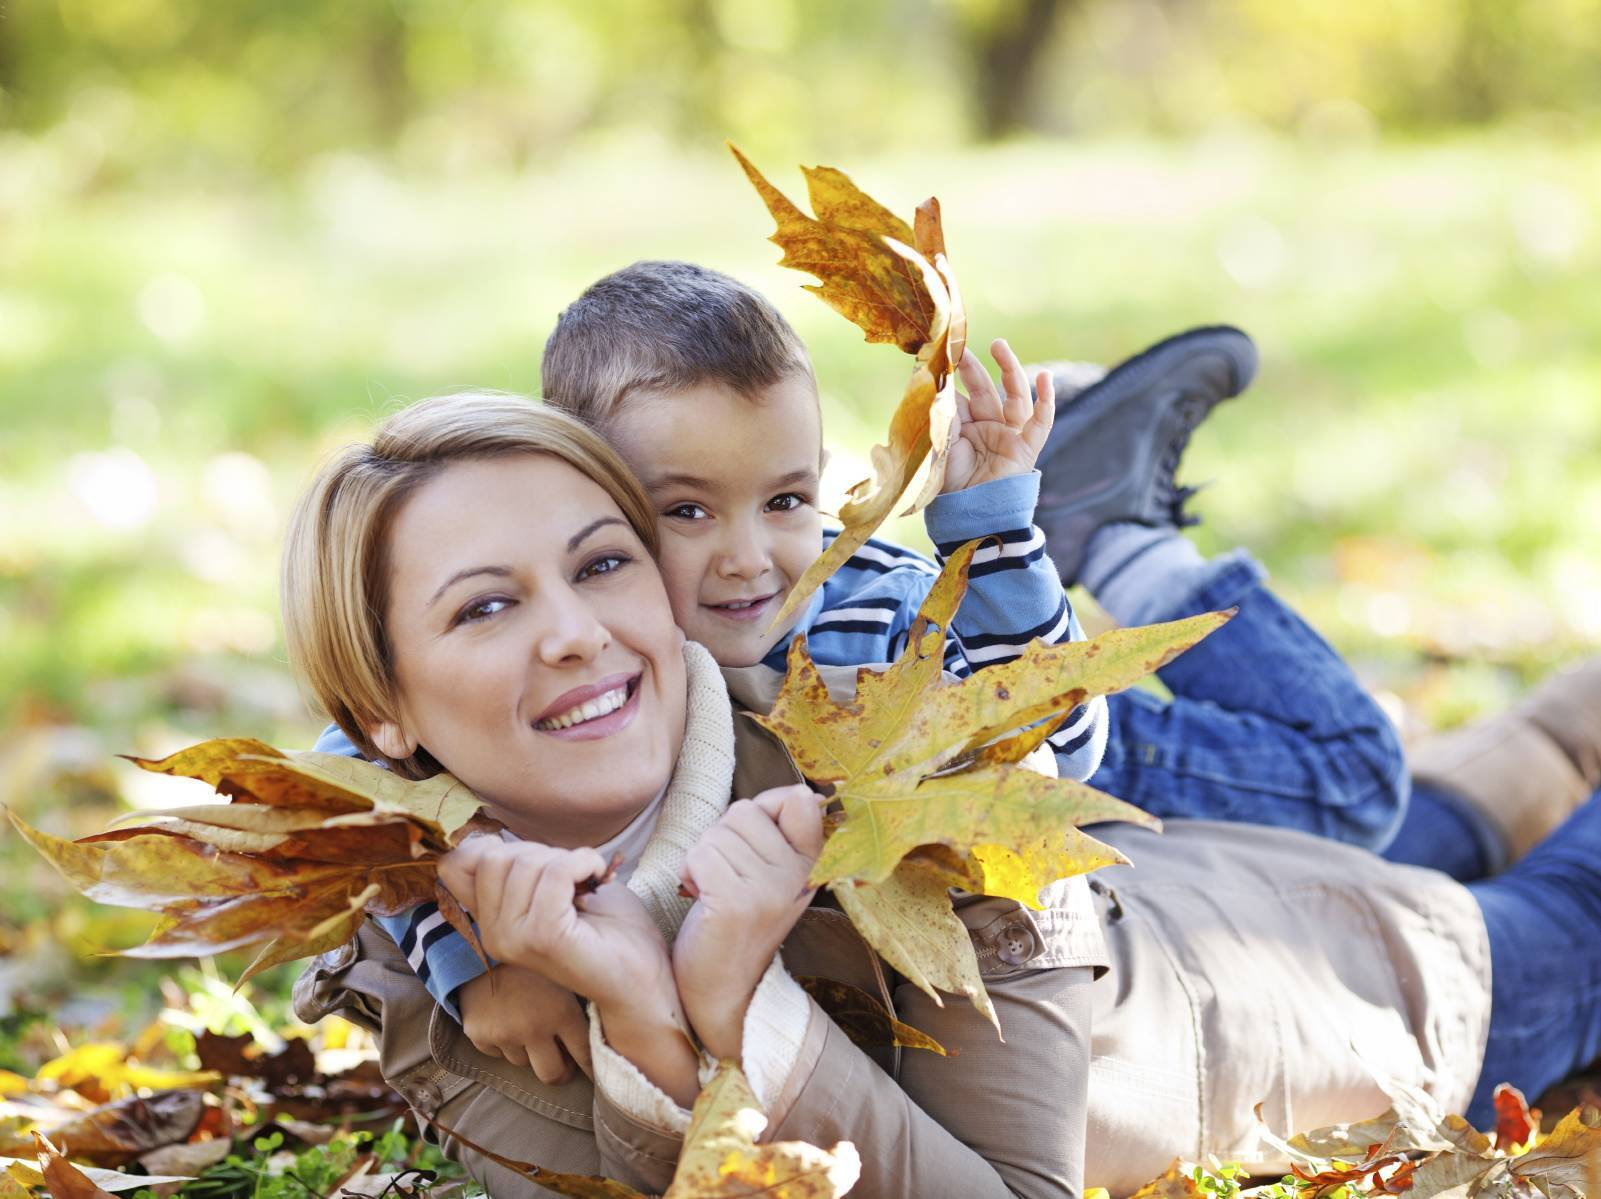 Spring Color Schemes Mother And Son Enjoying Autumn In Park H A Fisher